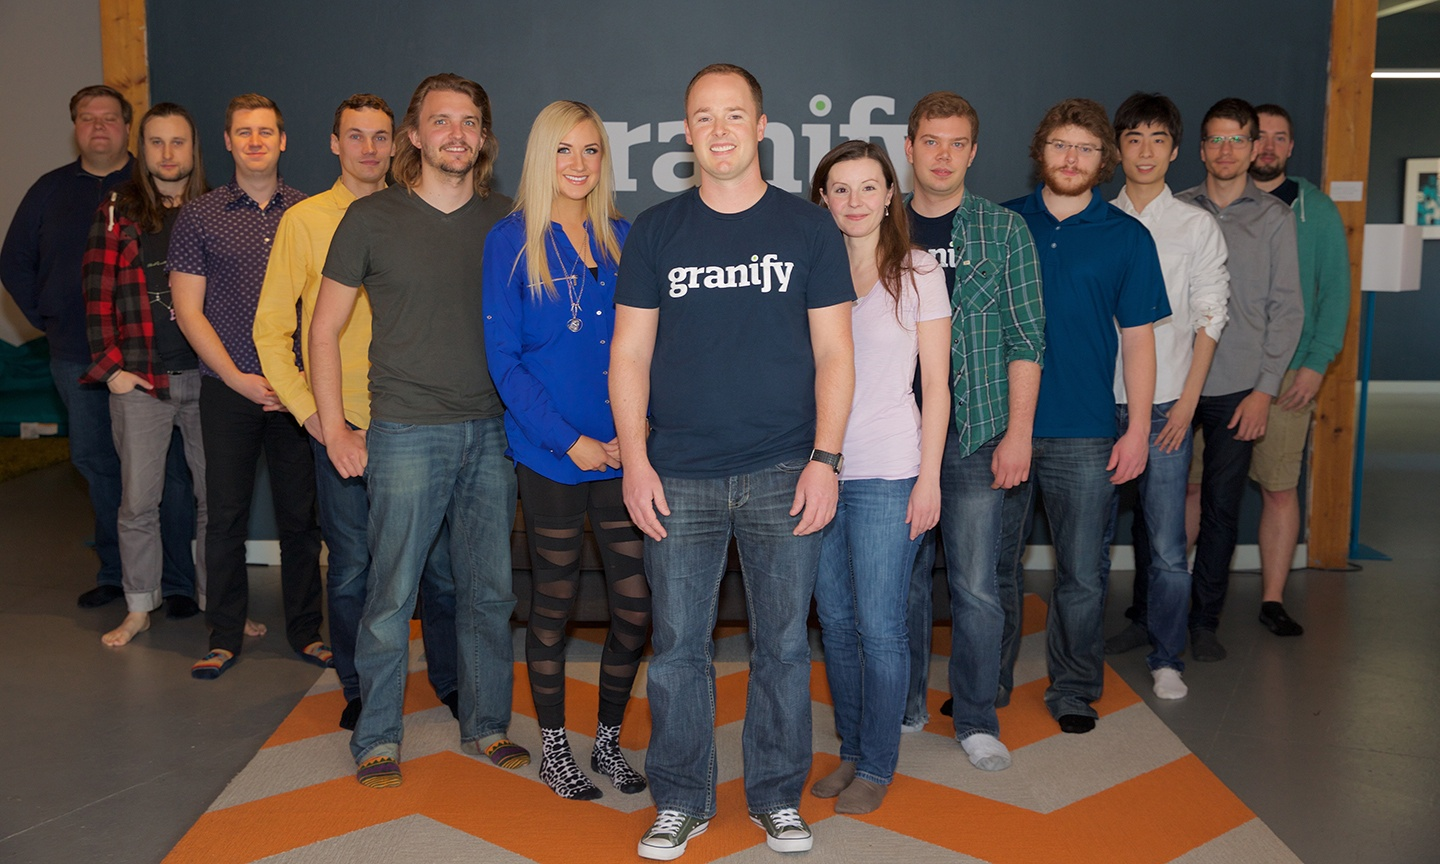 Granify_-_Team_Pictures_10.jpg